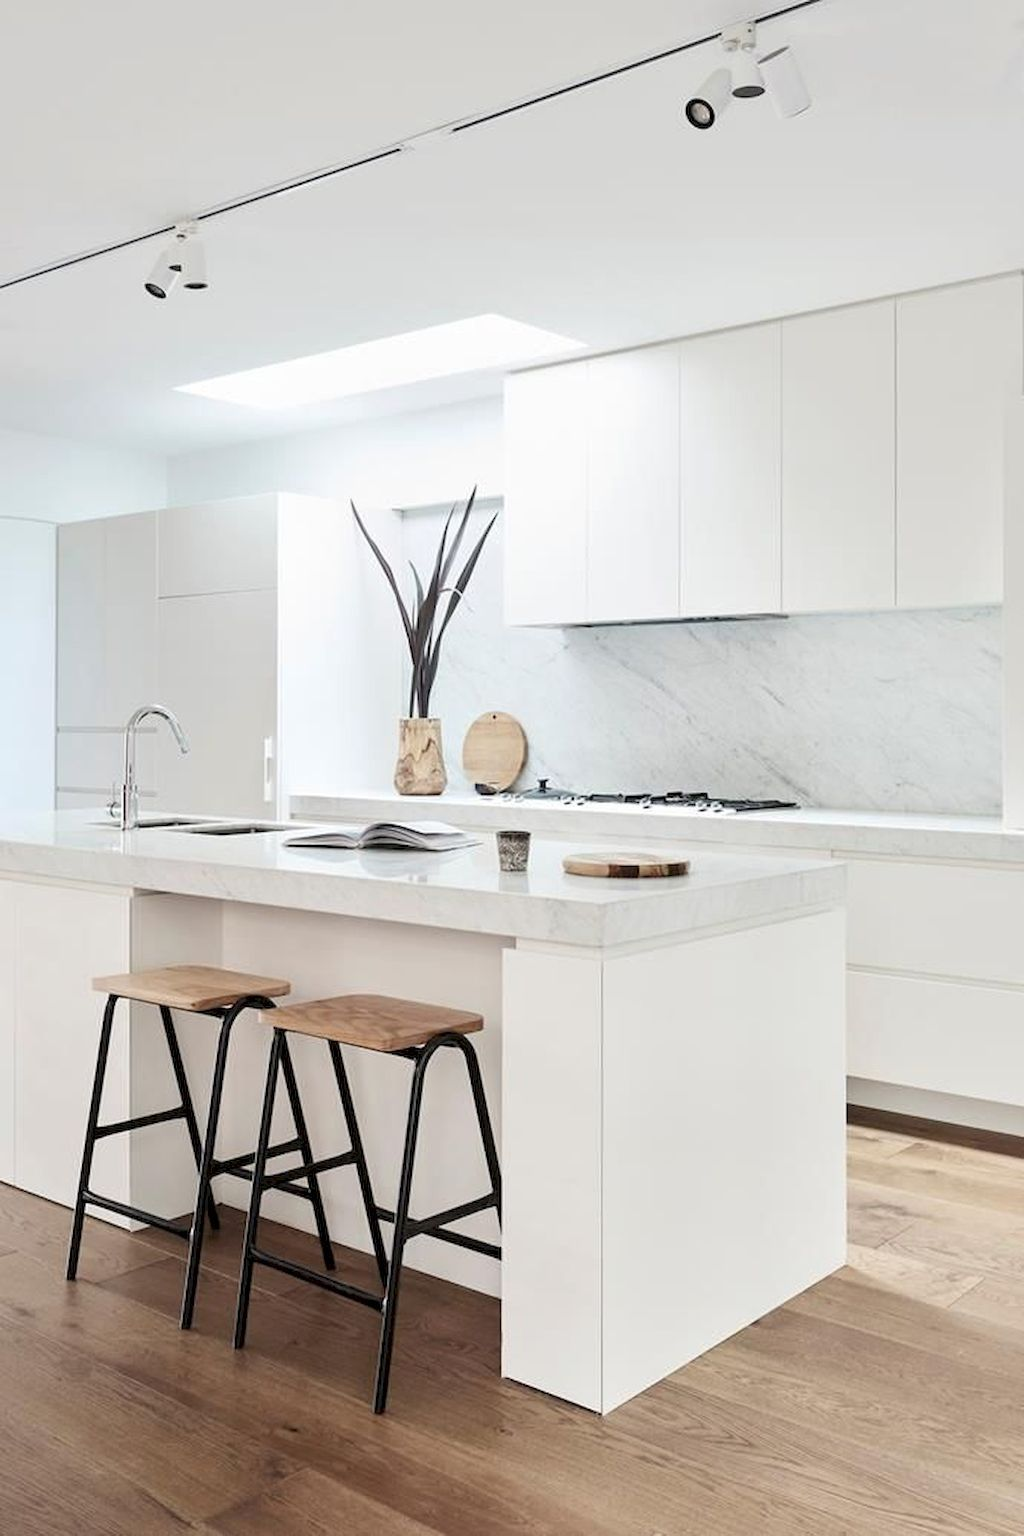 Minimalist Kitchens with Timeless Decoration #minimalistkitchen